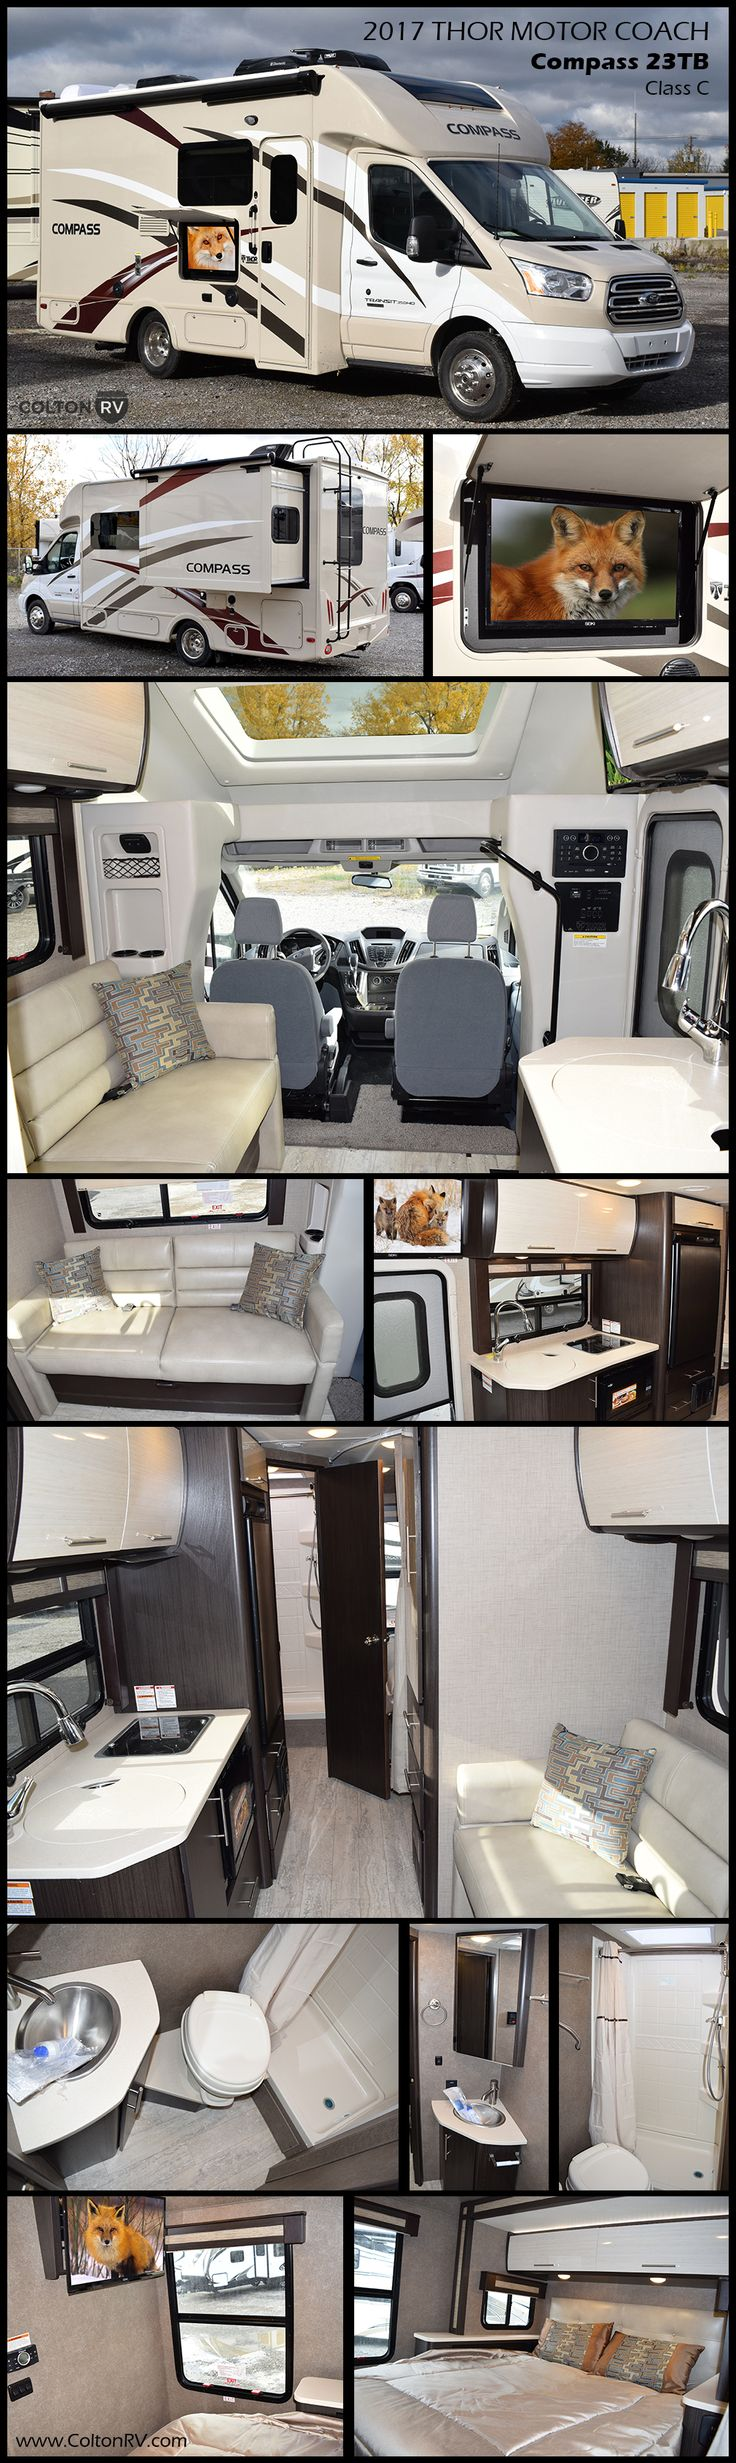 Stylish and comfortable you will love the compass by thor motor coach class c motorhome the second you walk through the door